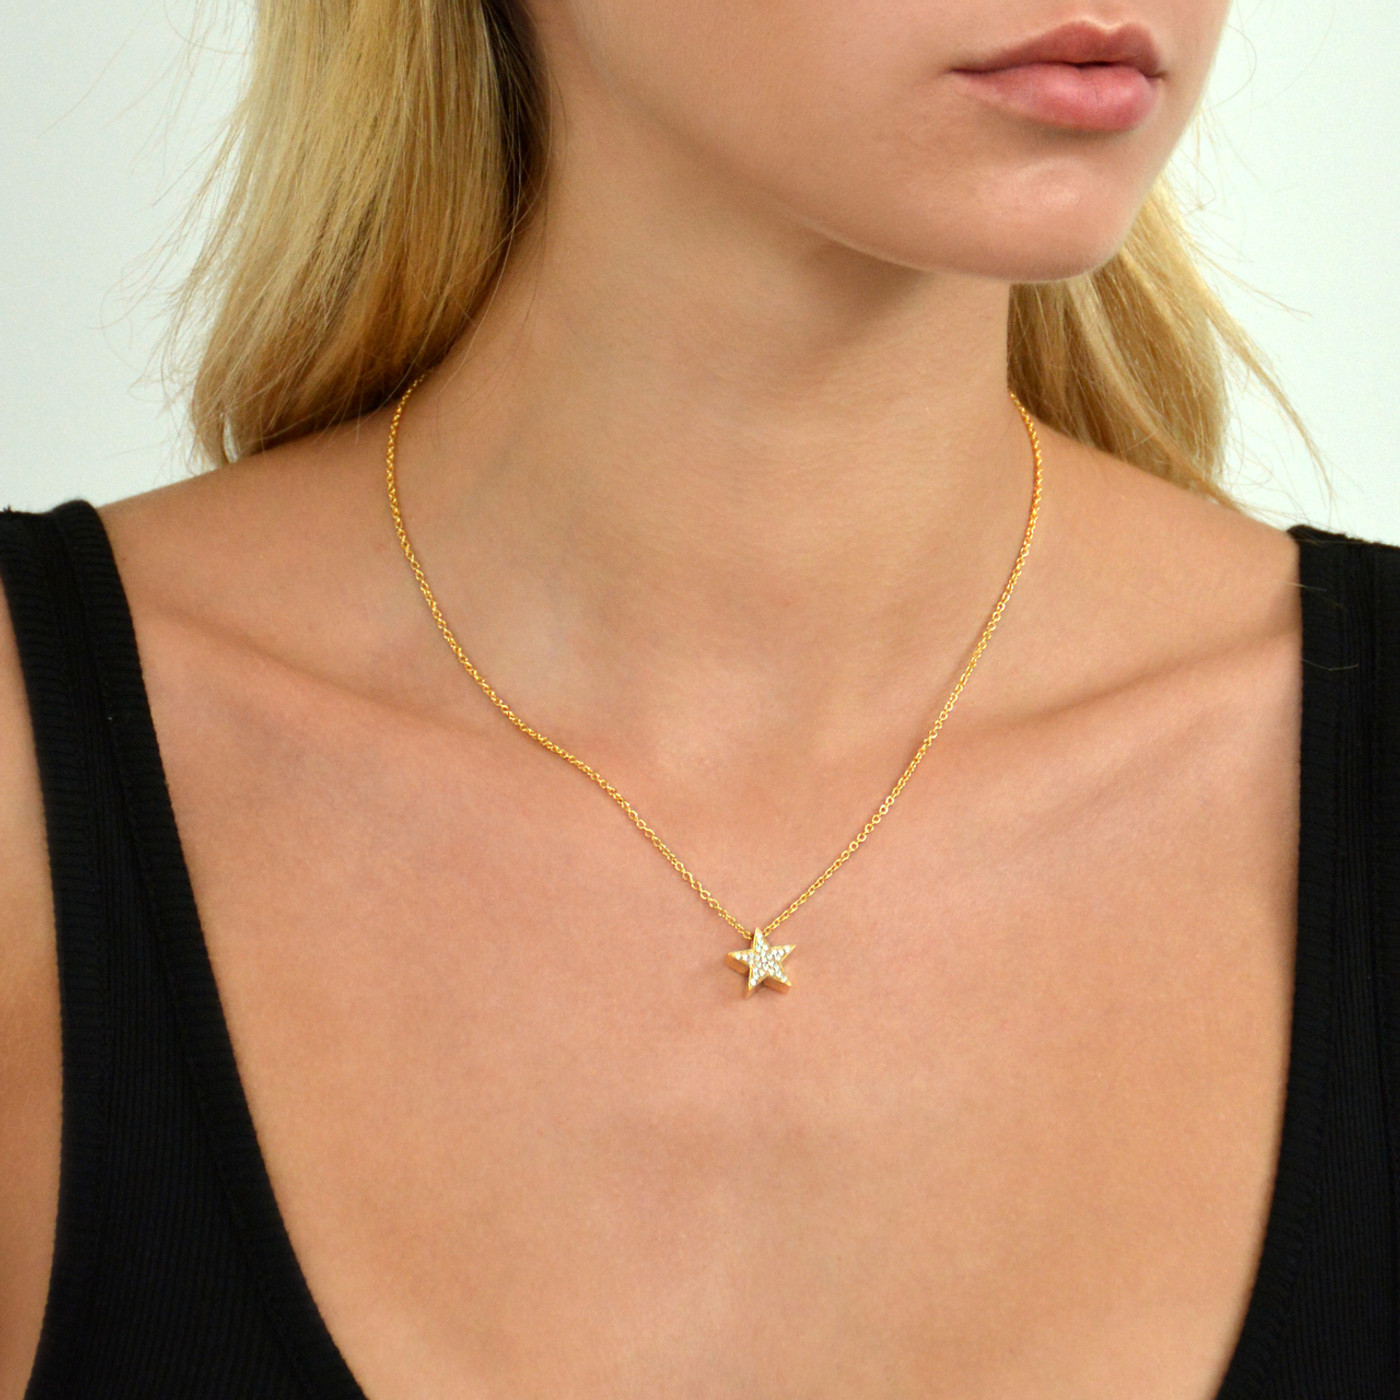 18K Gold over Sterling Silver Touch Star Necklace